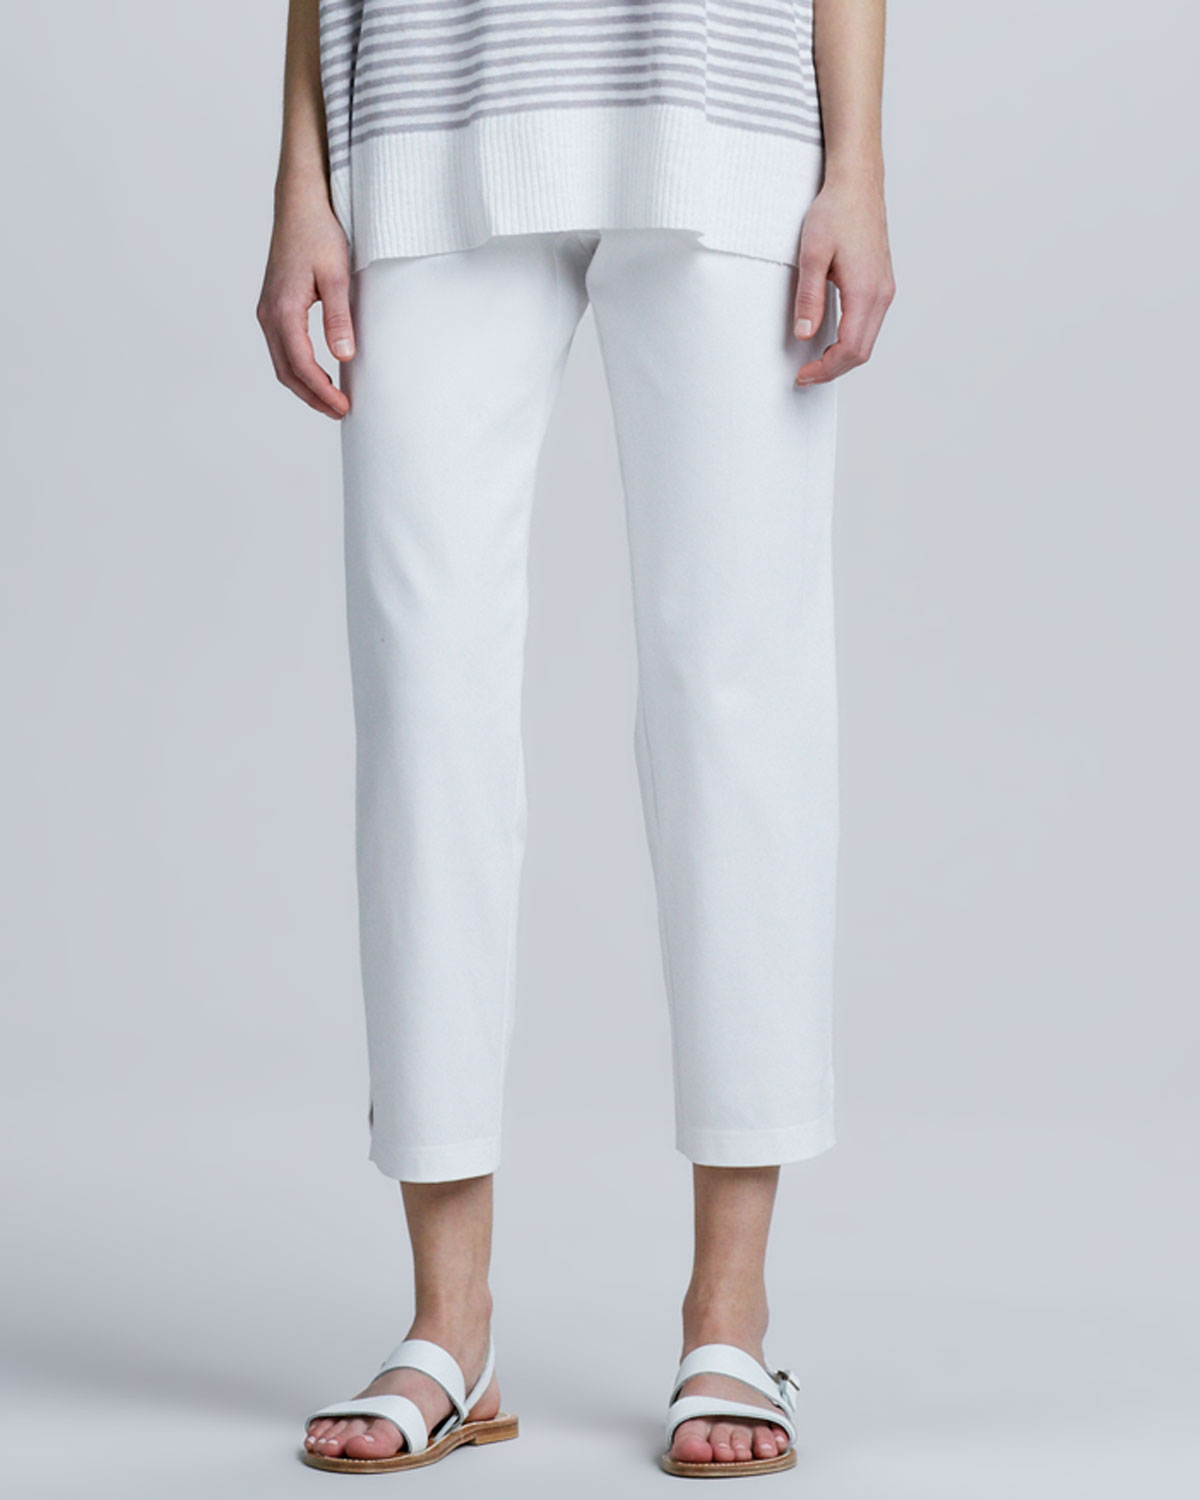 ca8c1d9ec1 Lyst - Eileen Fisher Organic Cotton Slim Ankle Pants in White